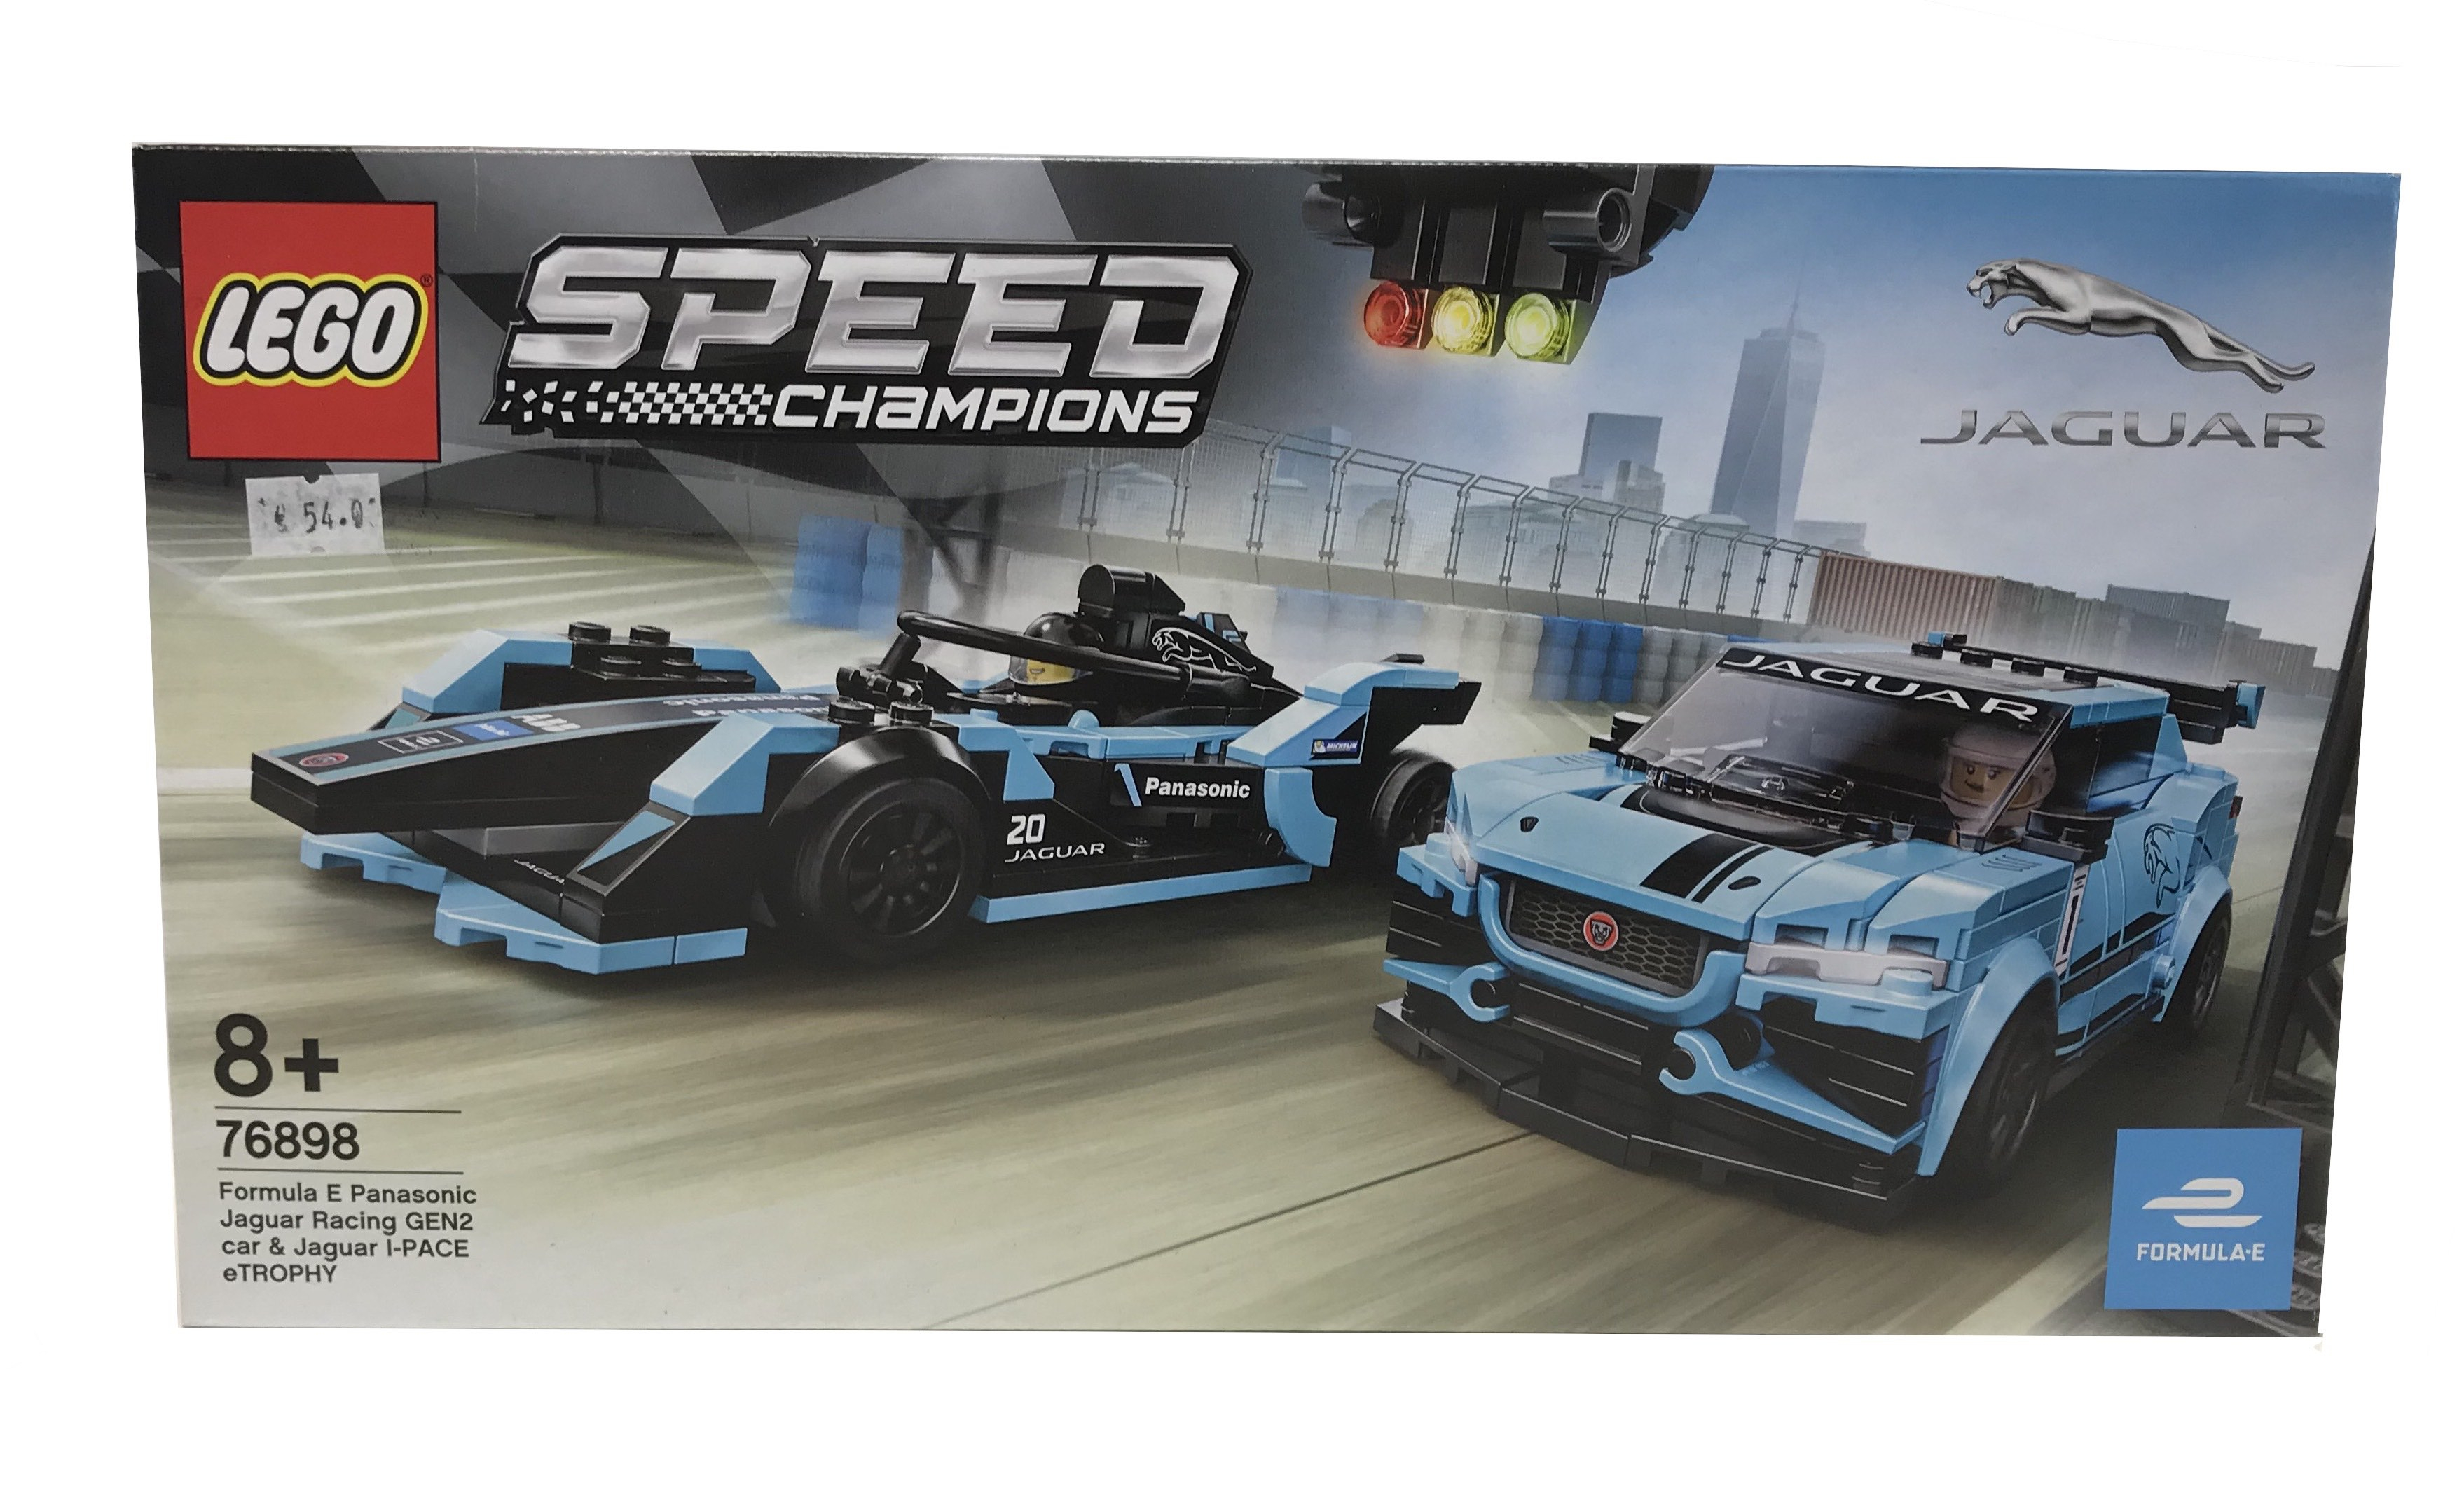 Lego Formula E Panasonic Jaguar  Racing Gen 2 car & Jaguar I-PAce and Trophy